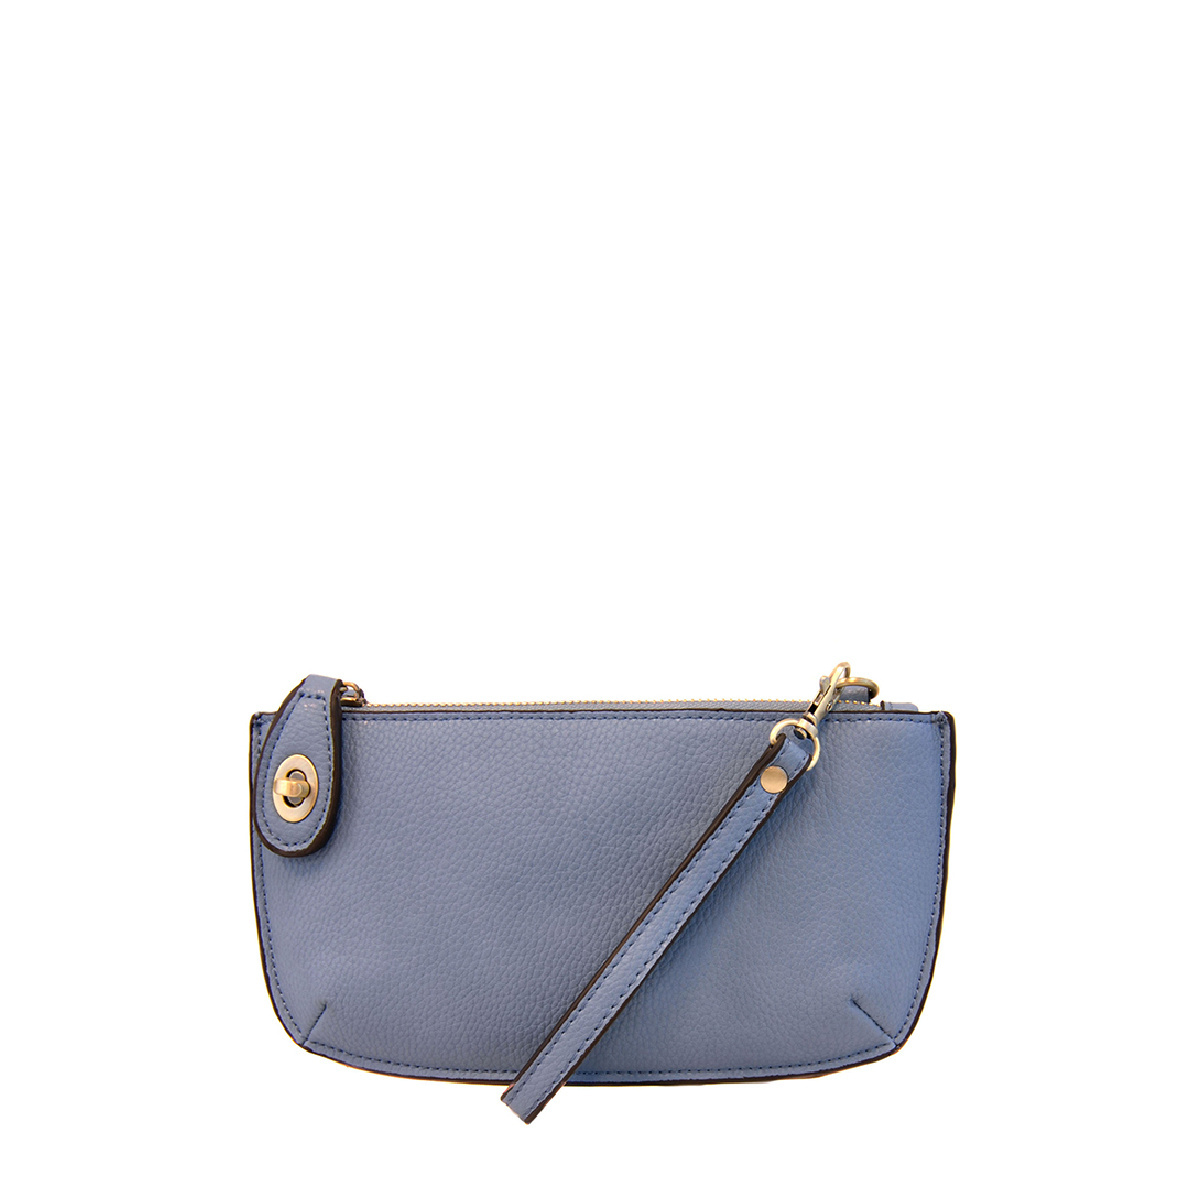 Joy Susan Joy Susan Mini Crossbody Wristlet Clutch Periwinkle